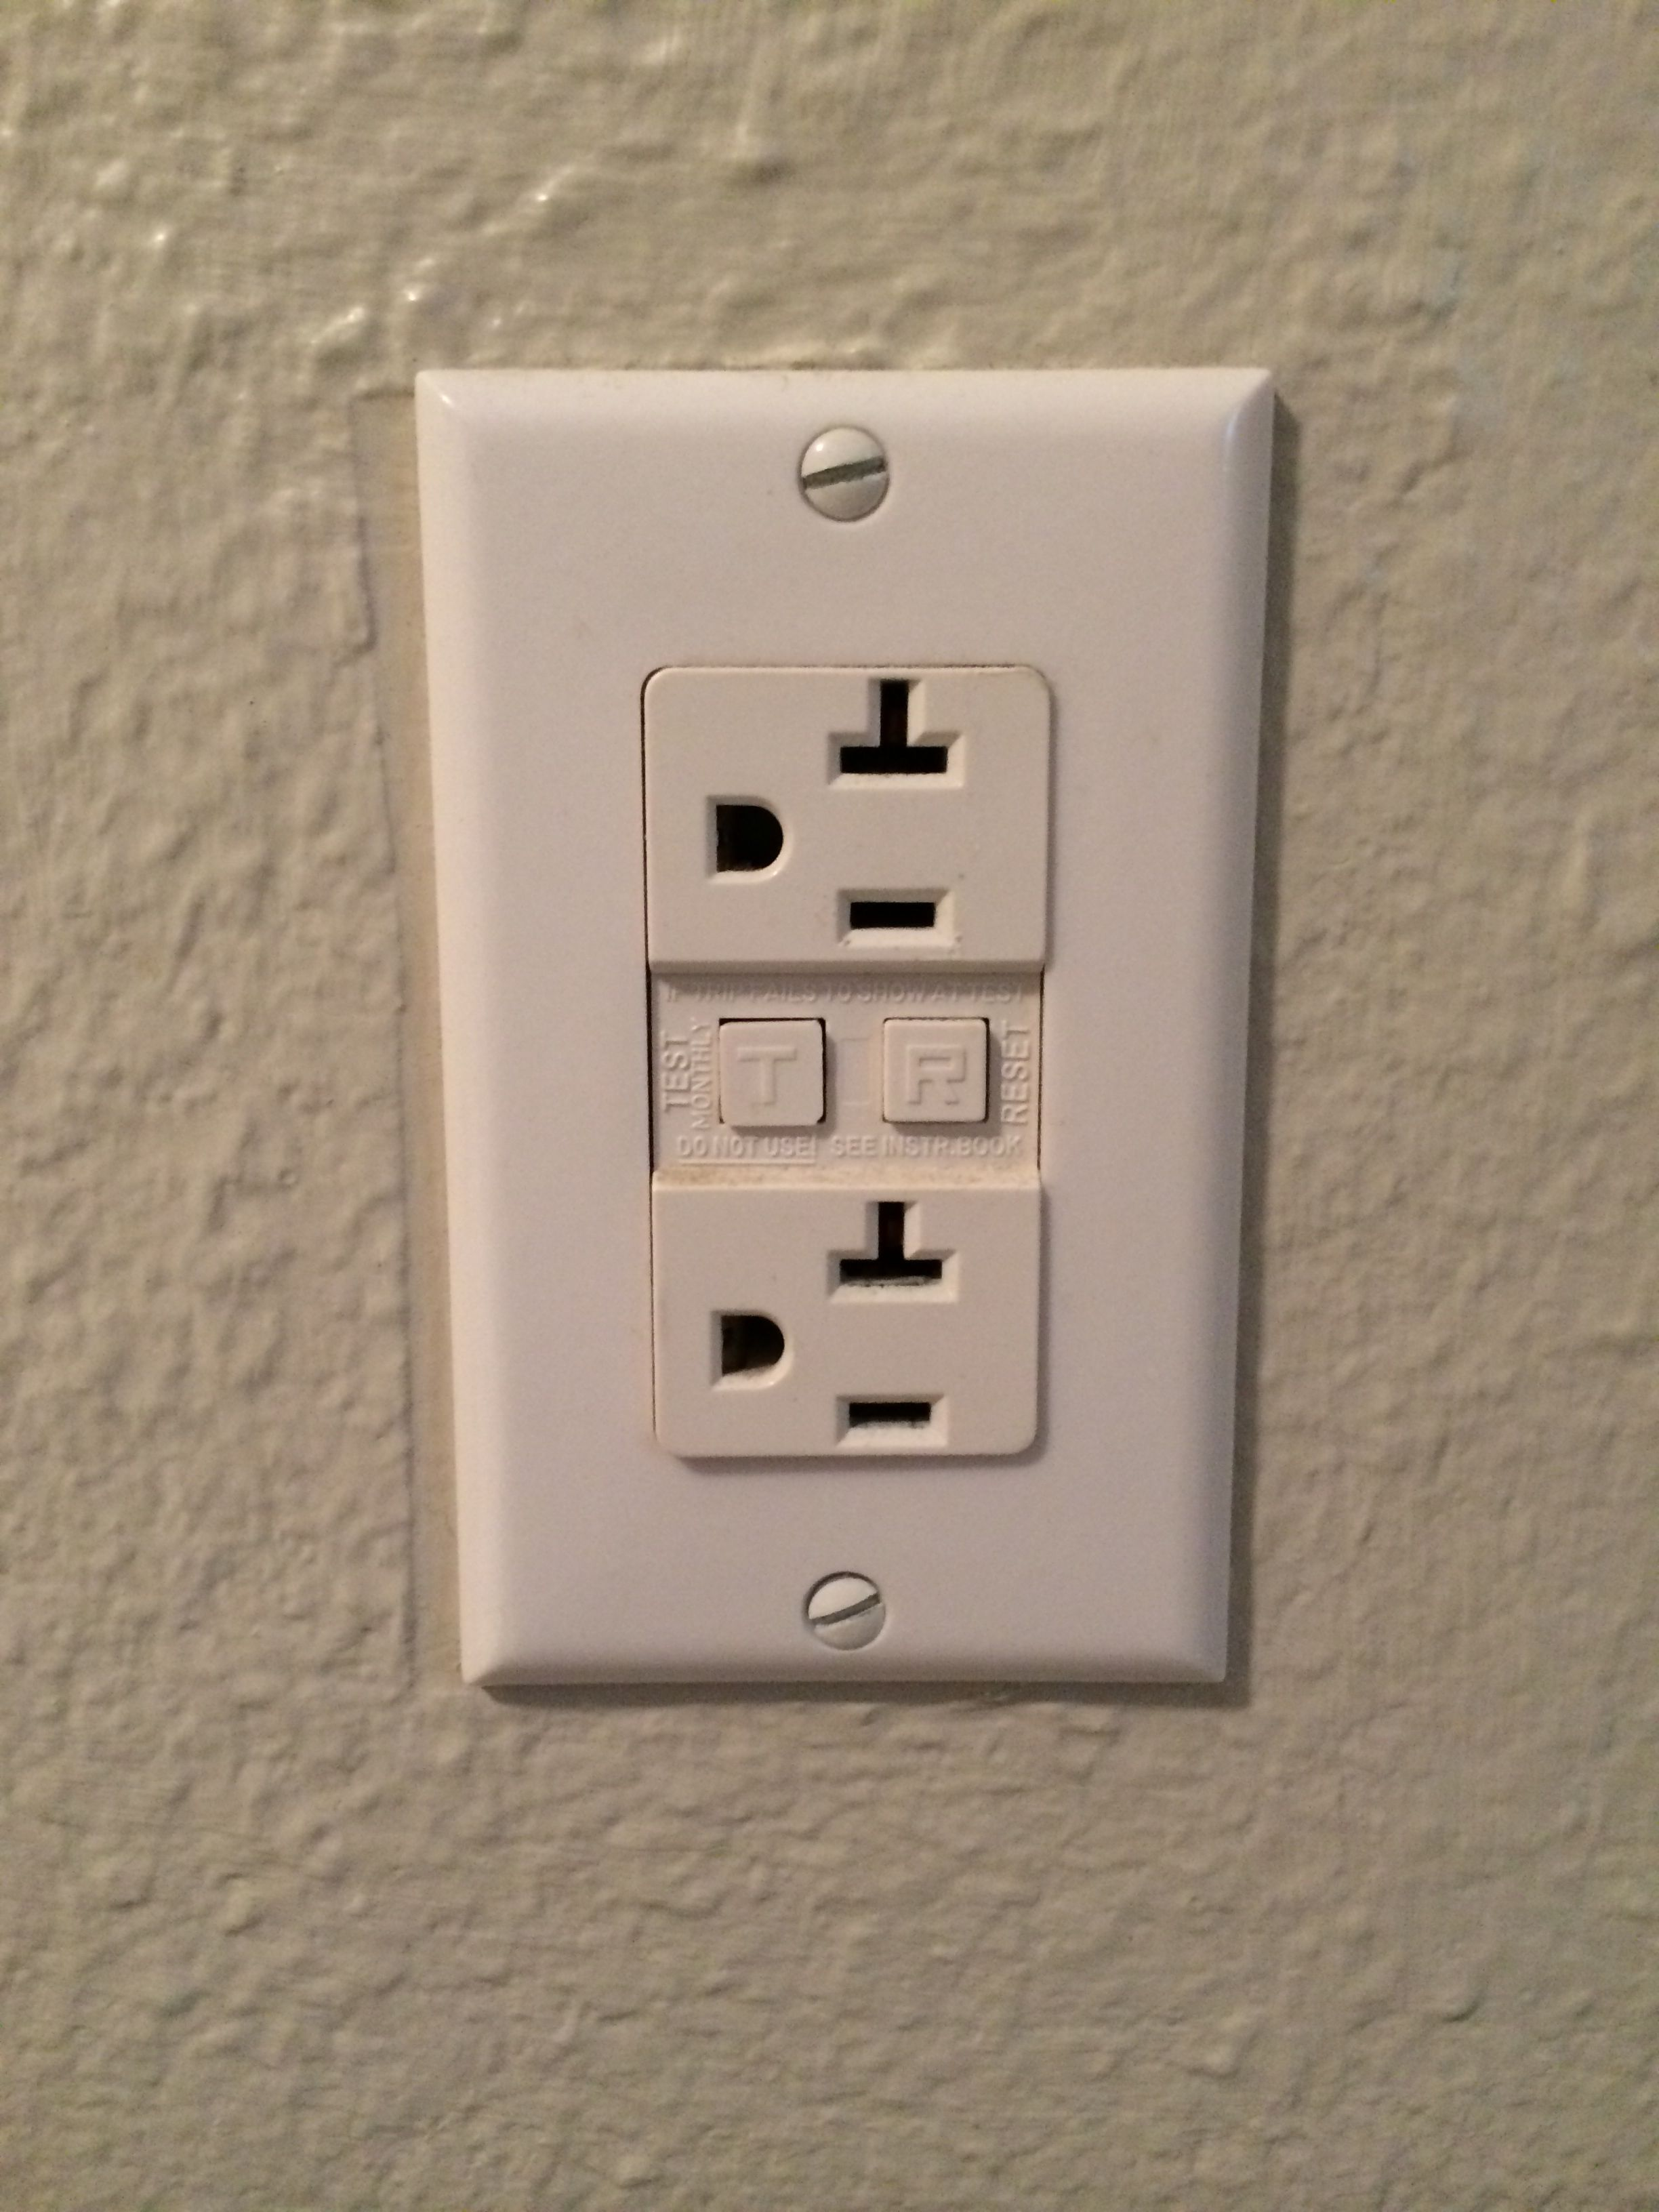 Baby Room You Choose Three Decorative Wall Outlet Plugs Kids Room Bathroom,